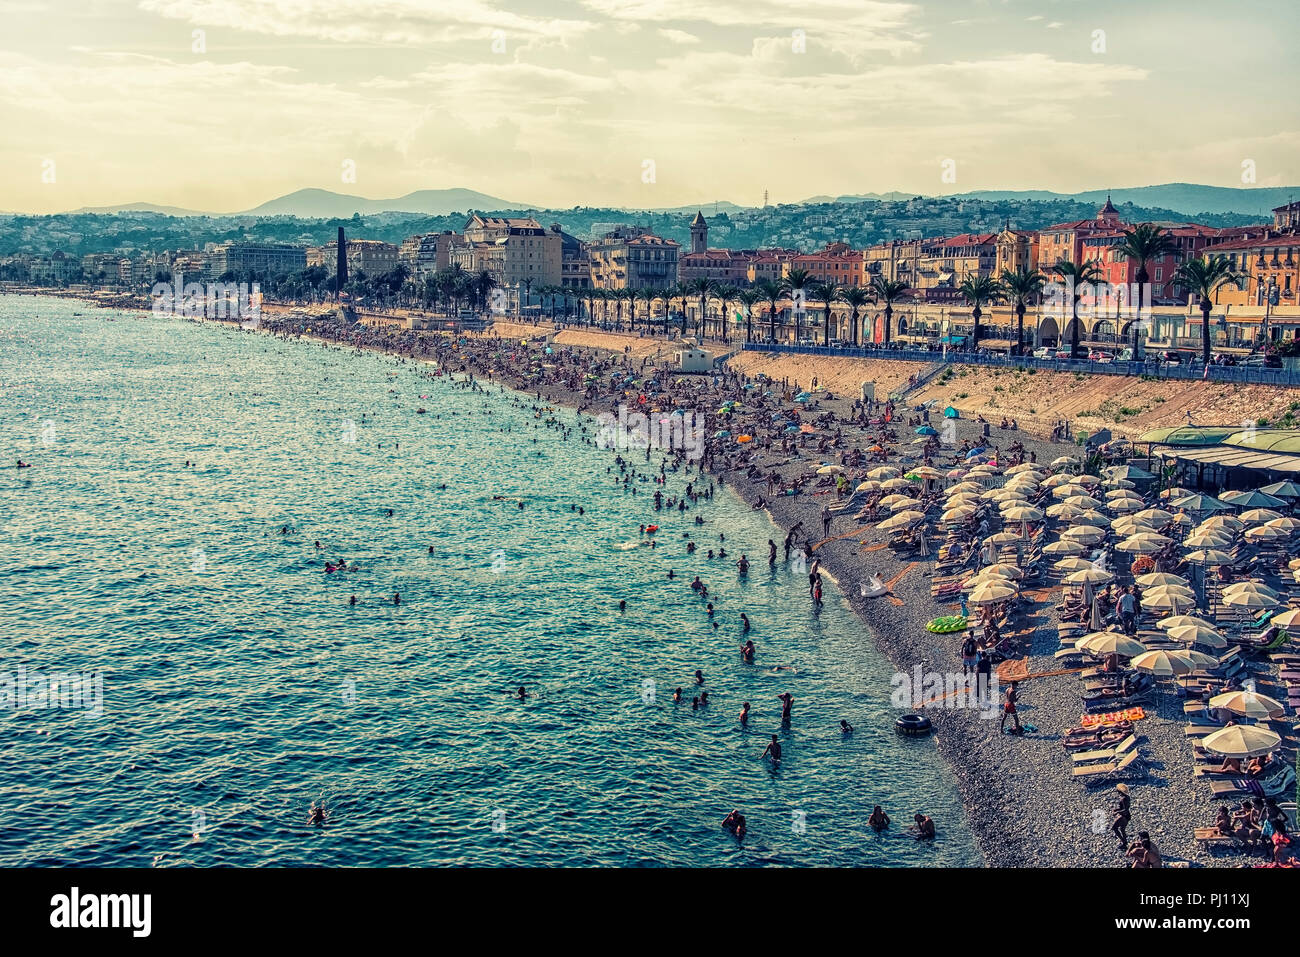 Summer time in  the city of Nice - Stock Image